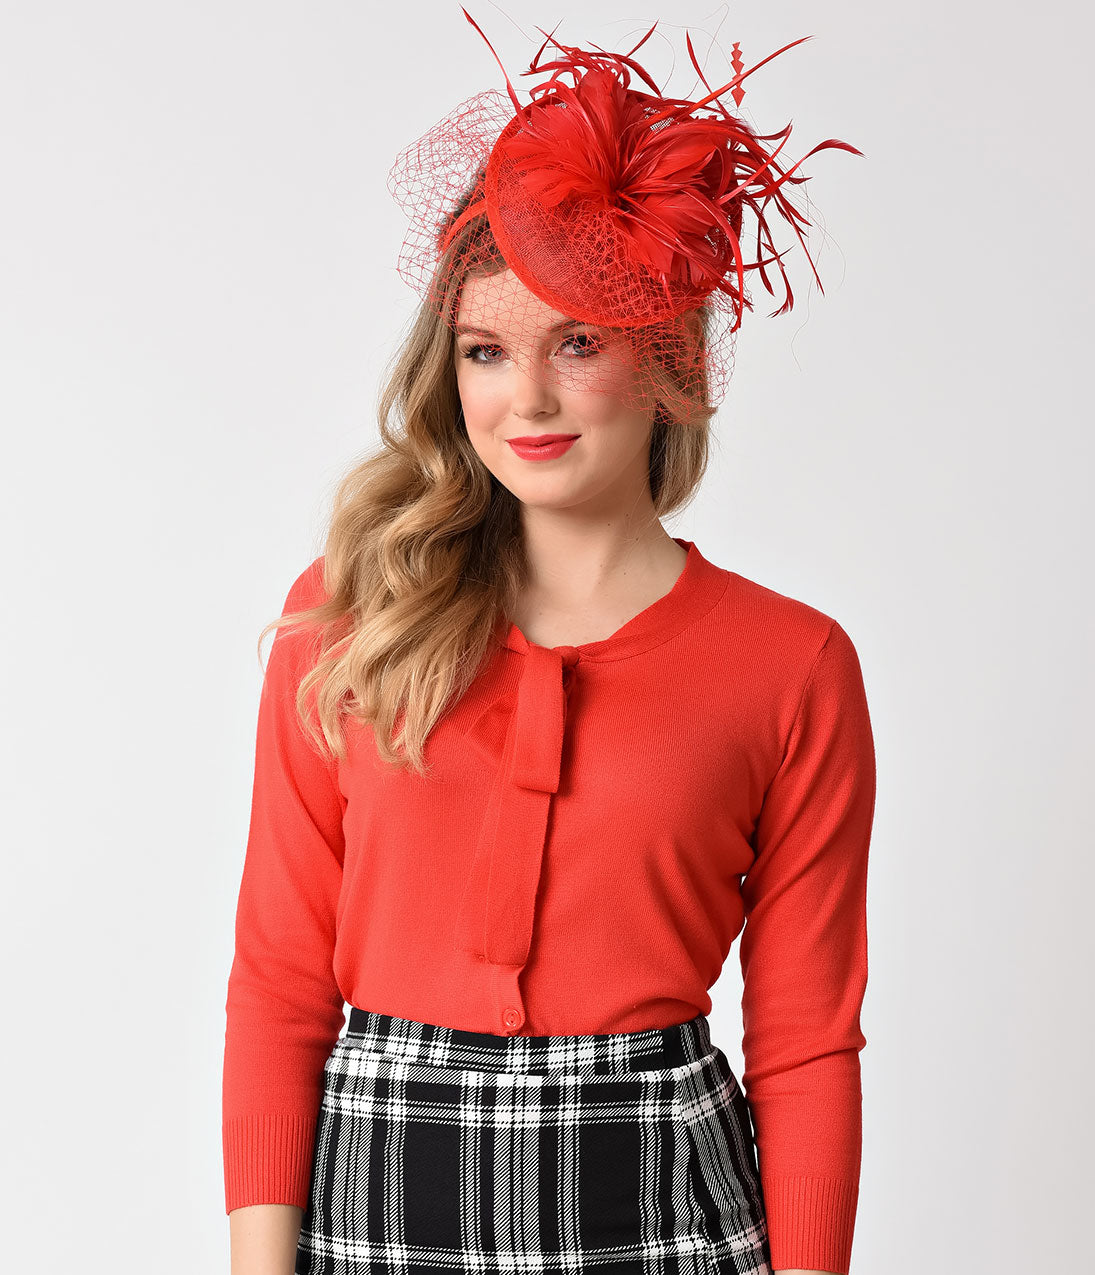 1950s Women's Hat Styles & History Red Sinamay  Netted Feather Fascinator Hair Clip $42.00 AT vintagedancer.com